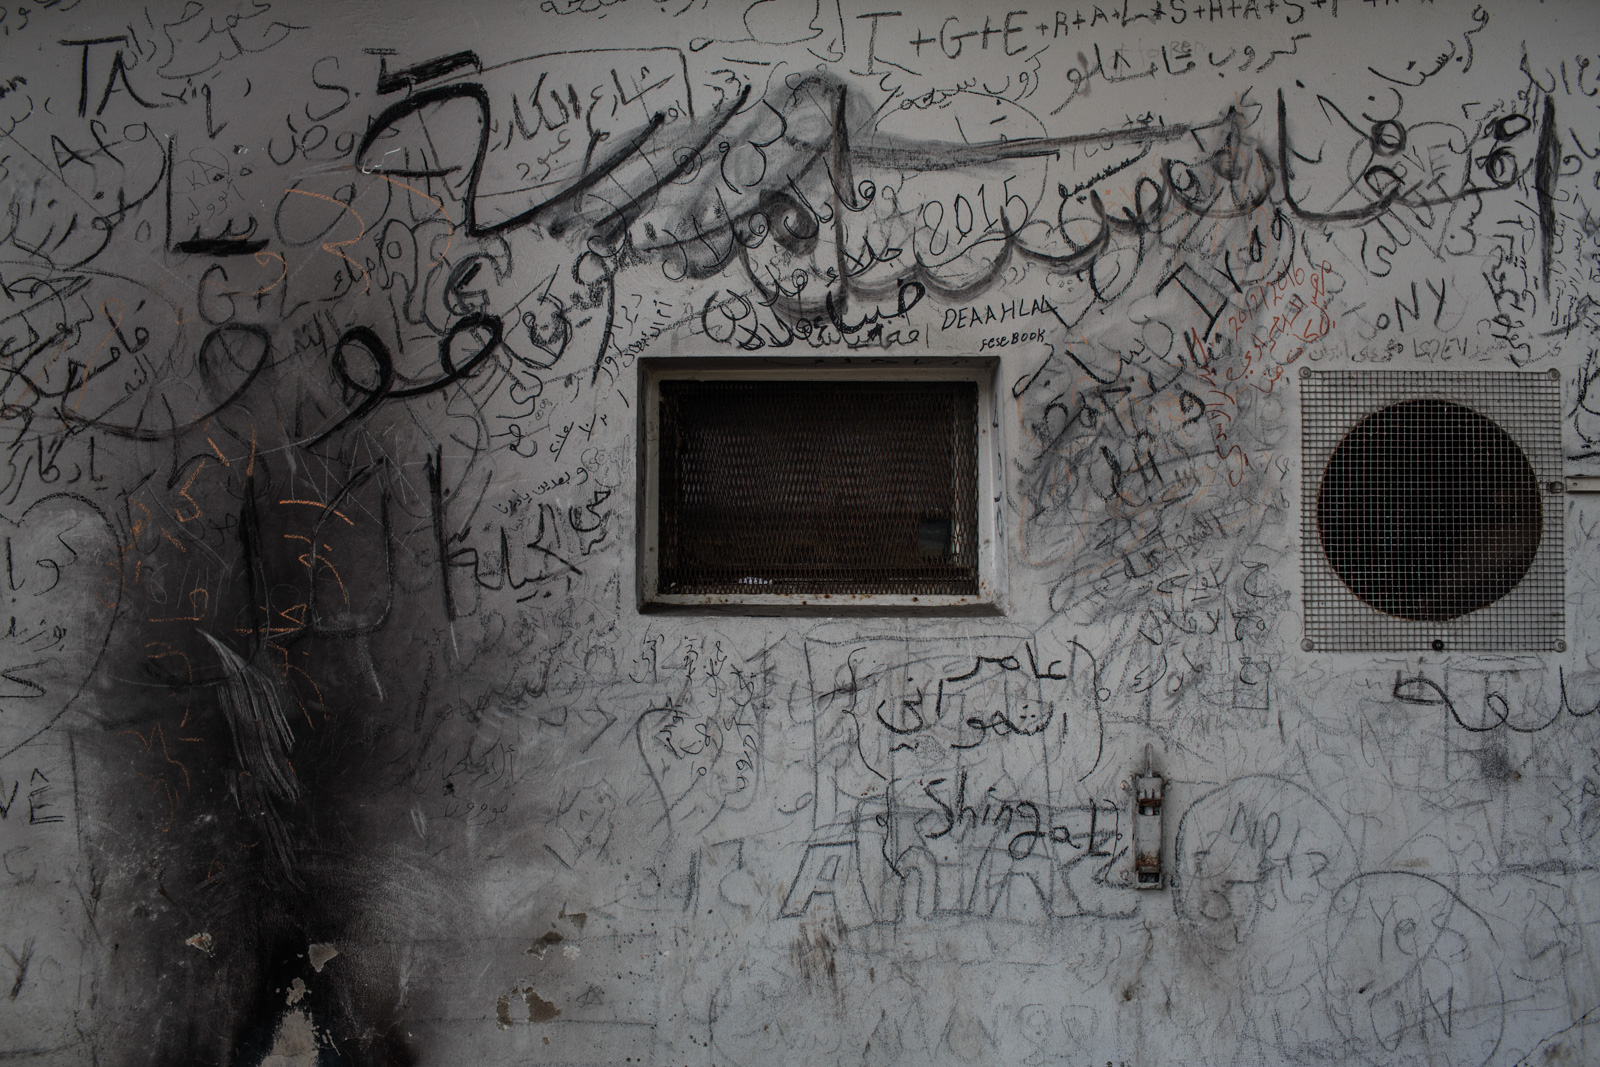 Šentilj, Slovenia - March 1, 2016: Writings on the wall in the migration center, left behind by the last of the refugees and migrants who managed to cross into Austria before the Balkan routed closed and open borders policies changed.